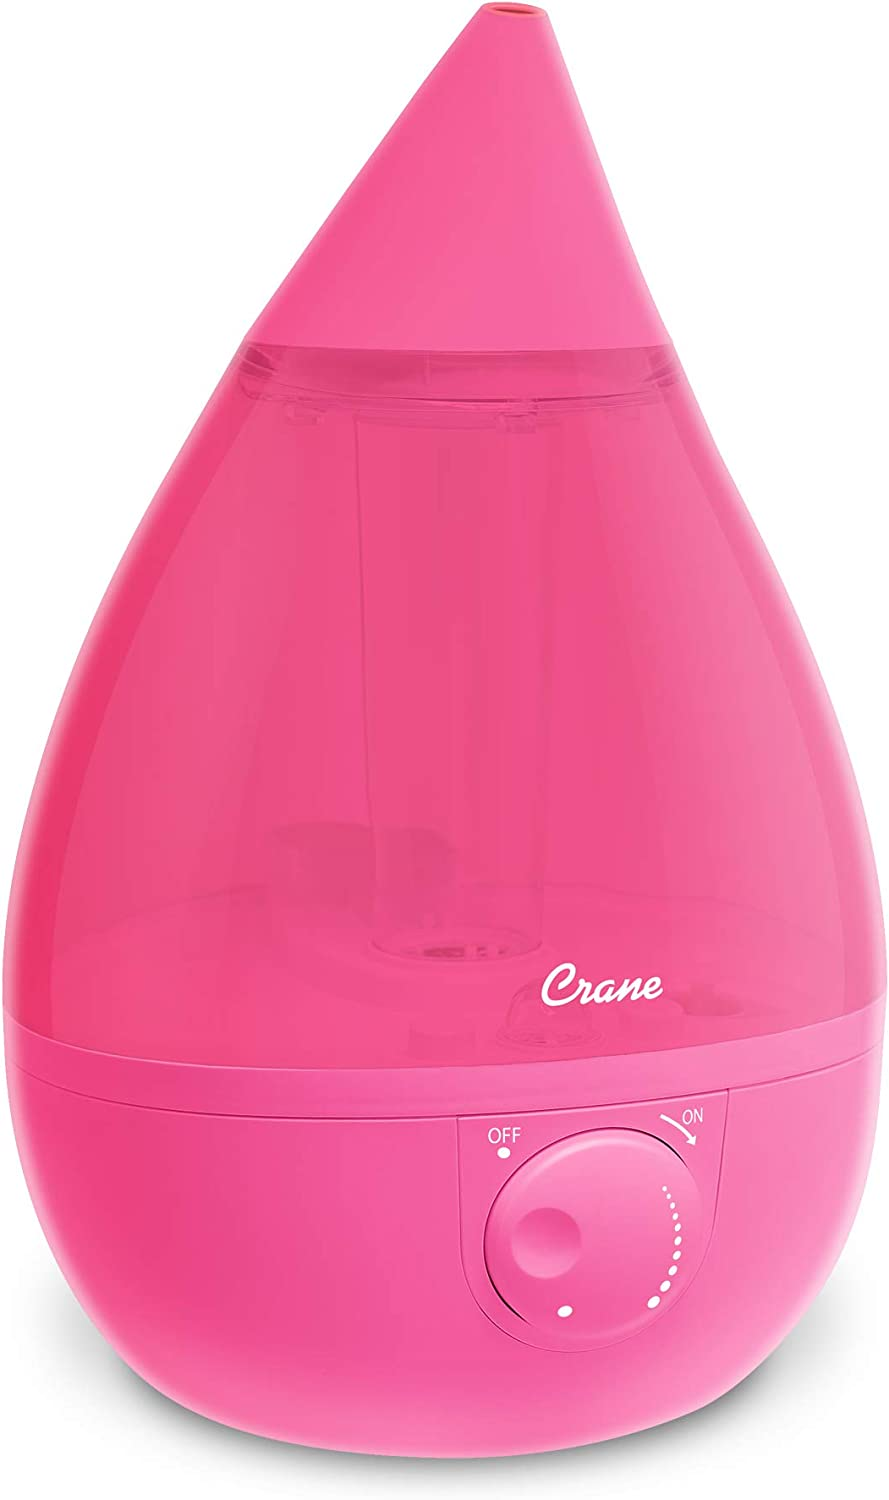 Crane Drop Ultrasonic Cool Mist Humidifier, Filter Free, 1 Gallon, 500 Sq Ft Coverage, Air Humidifier for Plants Home Bedroom Baby Nursery and Office, Pink